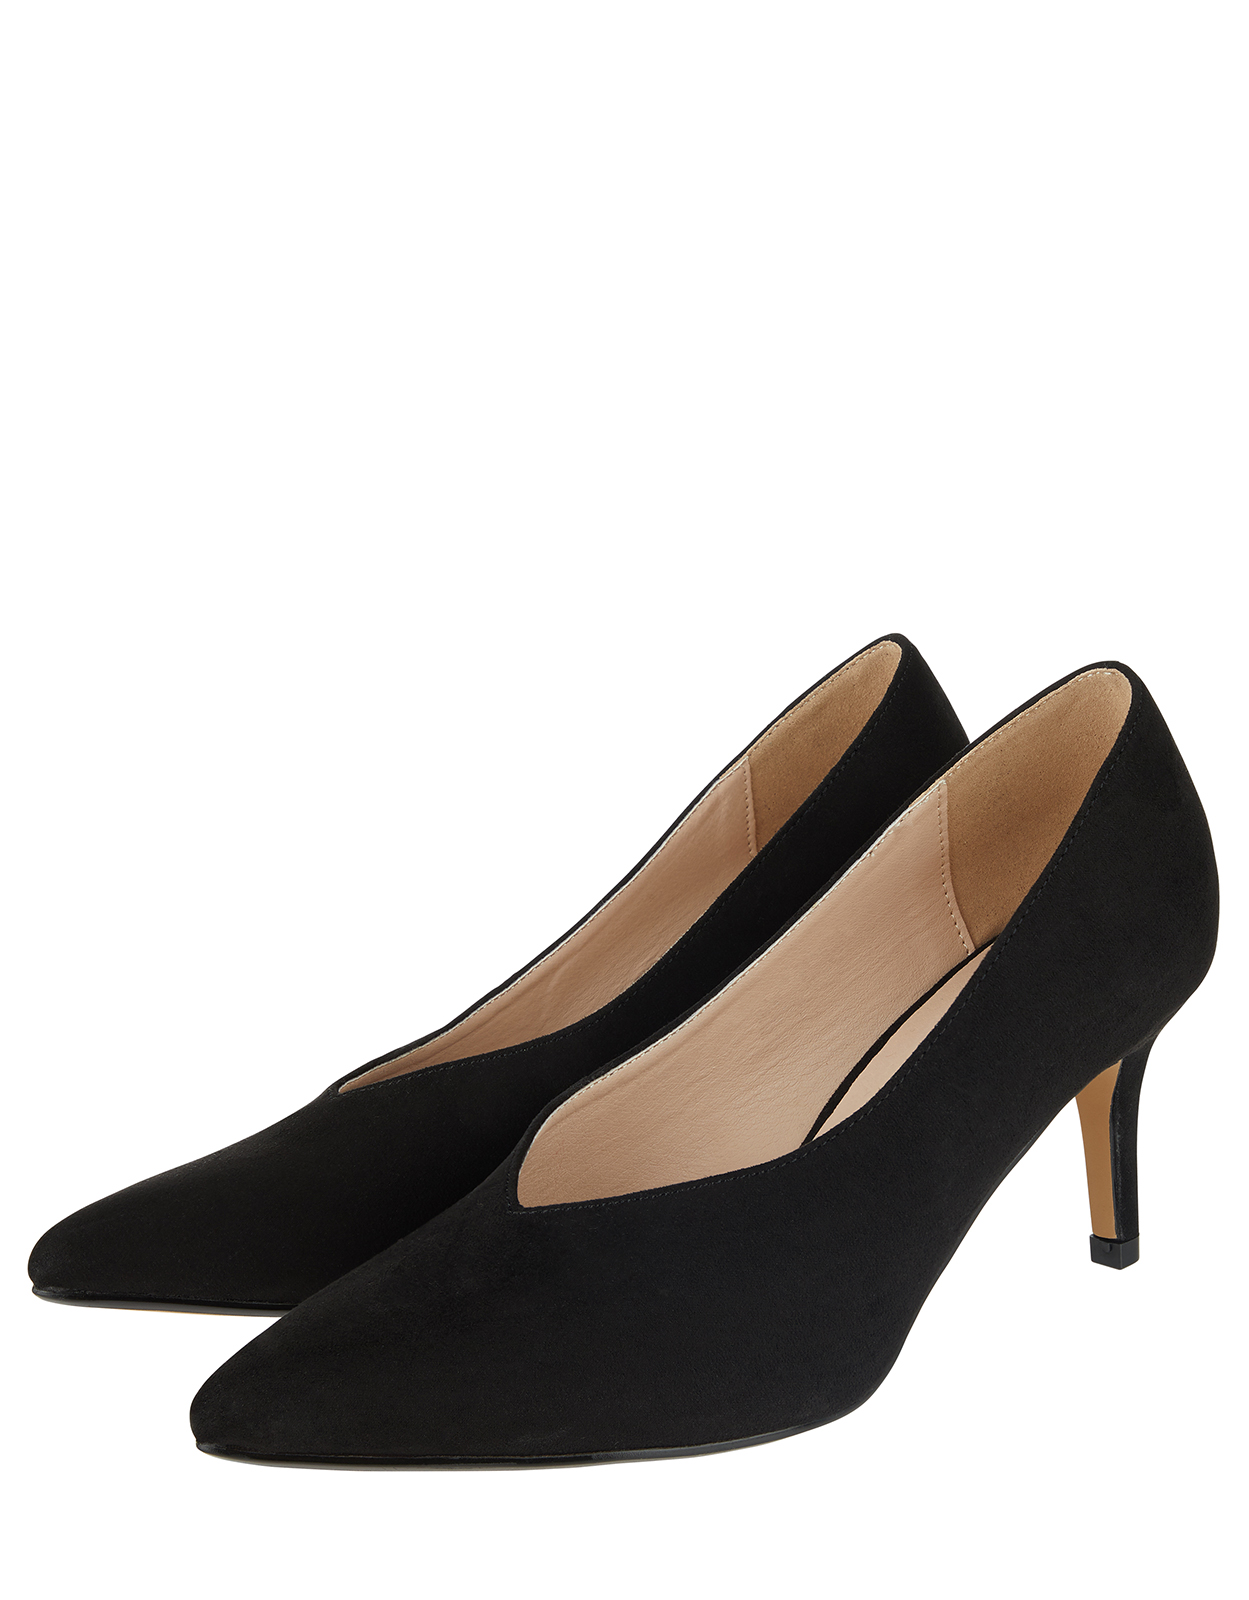 Monsoon Heidi High Vamp Court Shoes